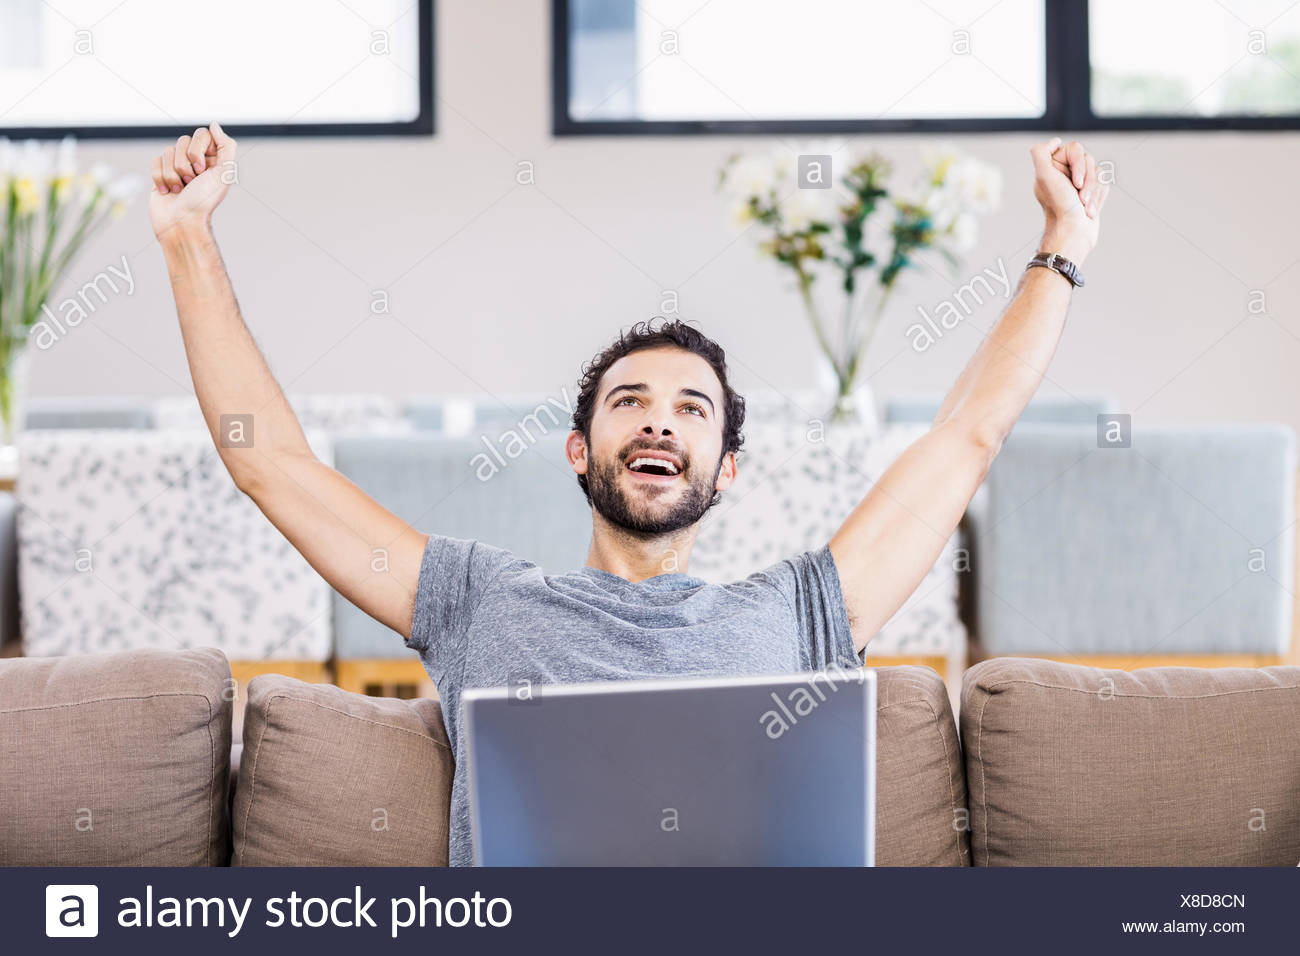 Handsome man rejoicing with laptop on legs - Stock Image